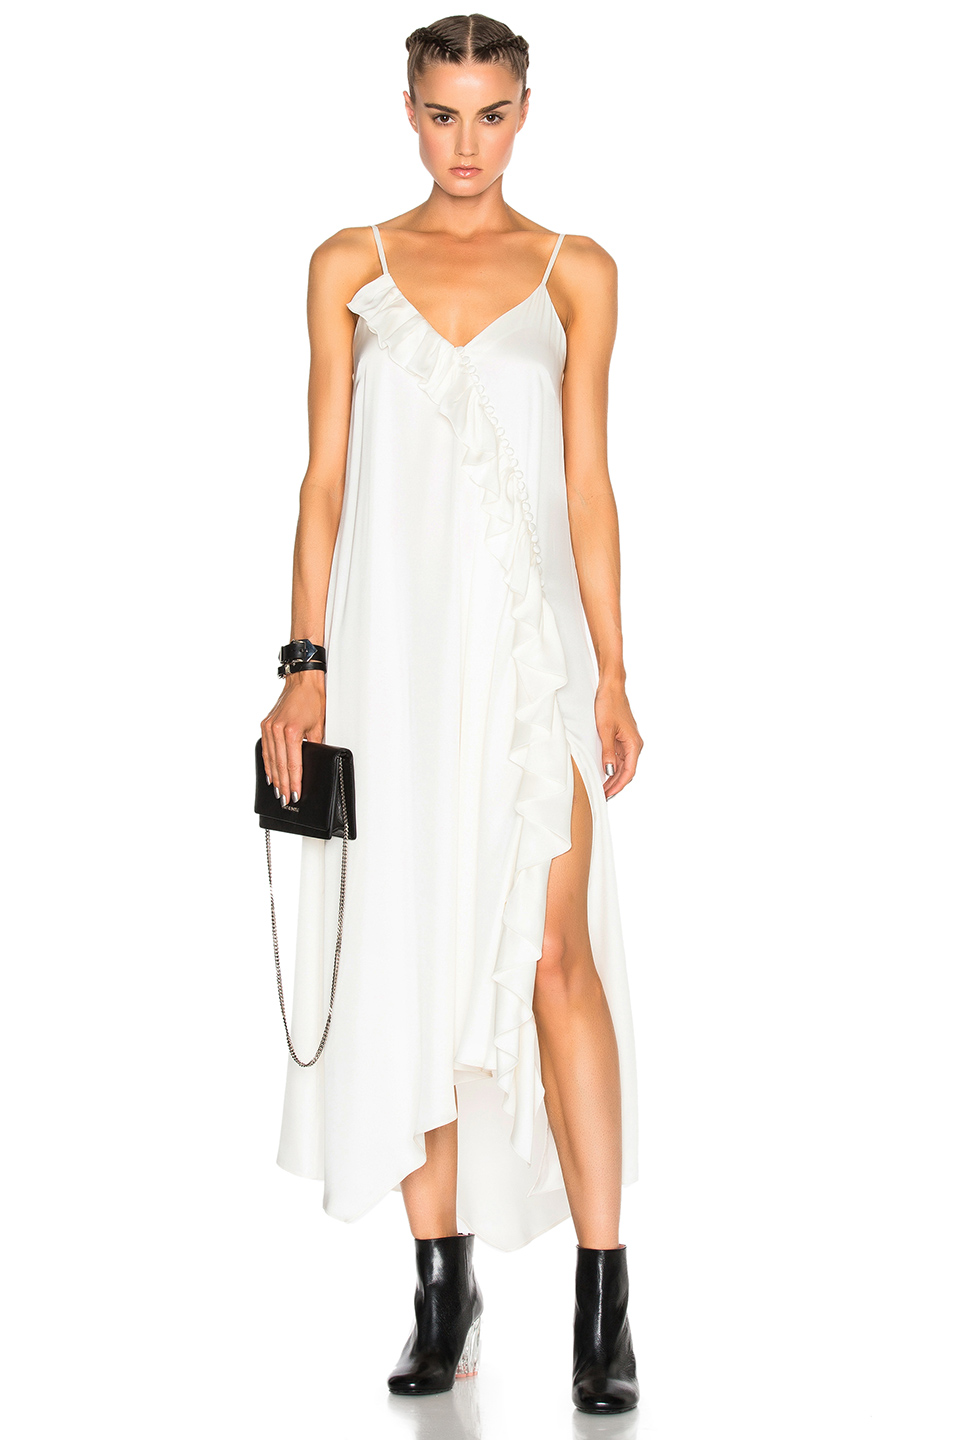 Magda Butrym for FWRD Treviso Dress in White